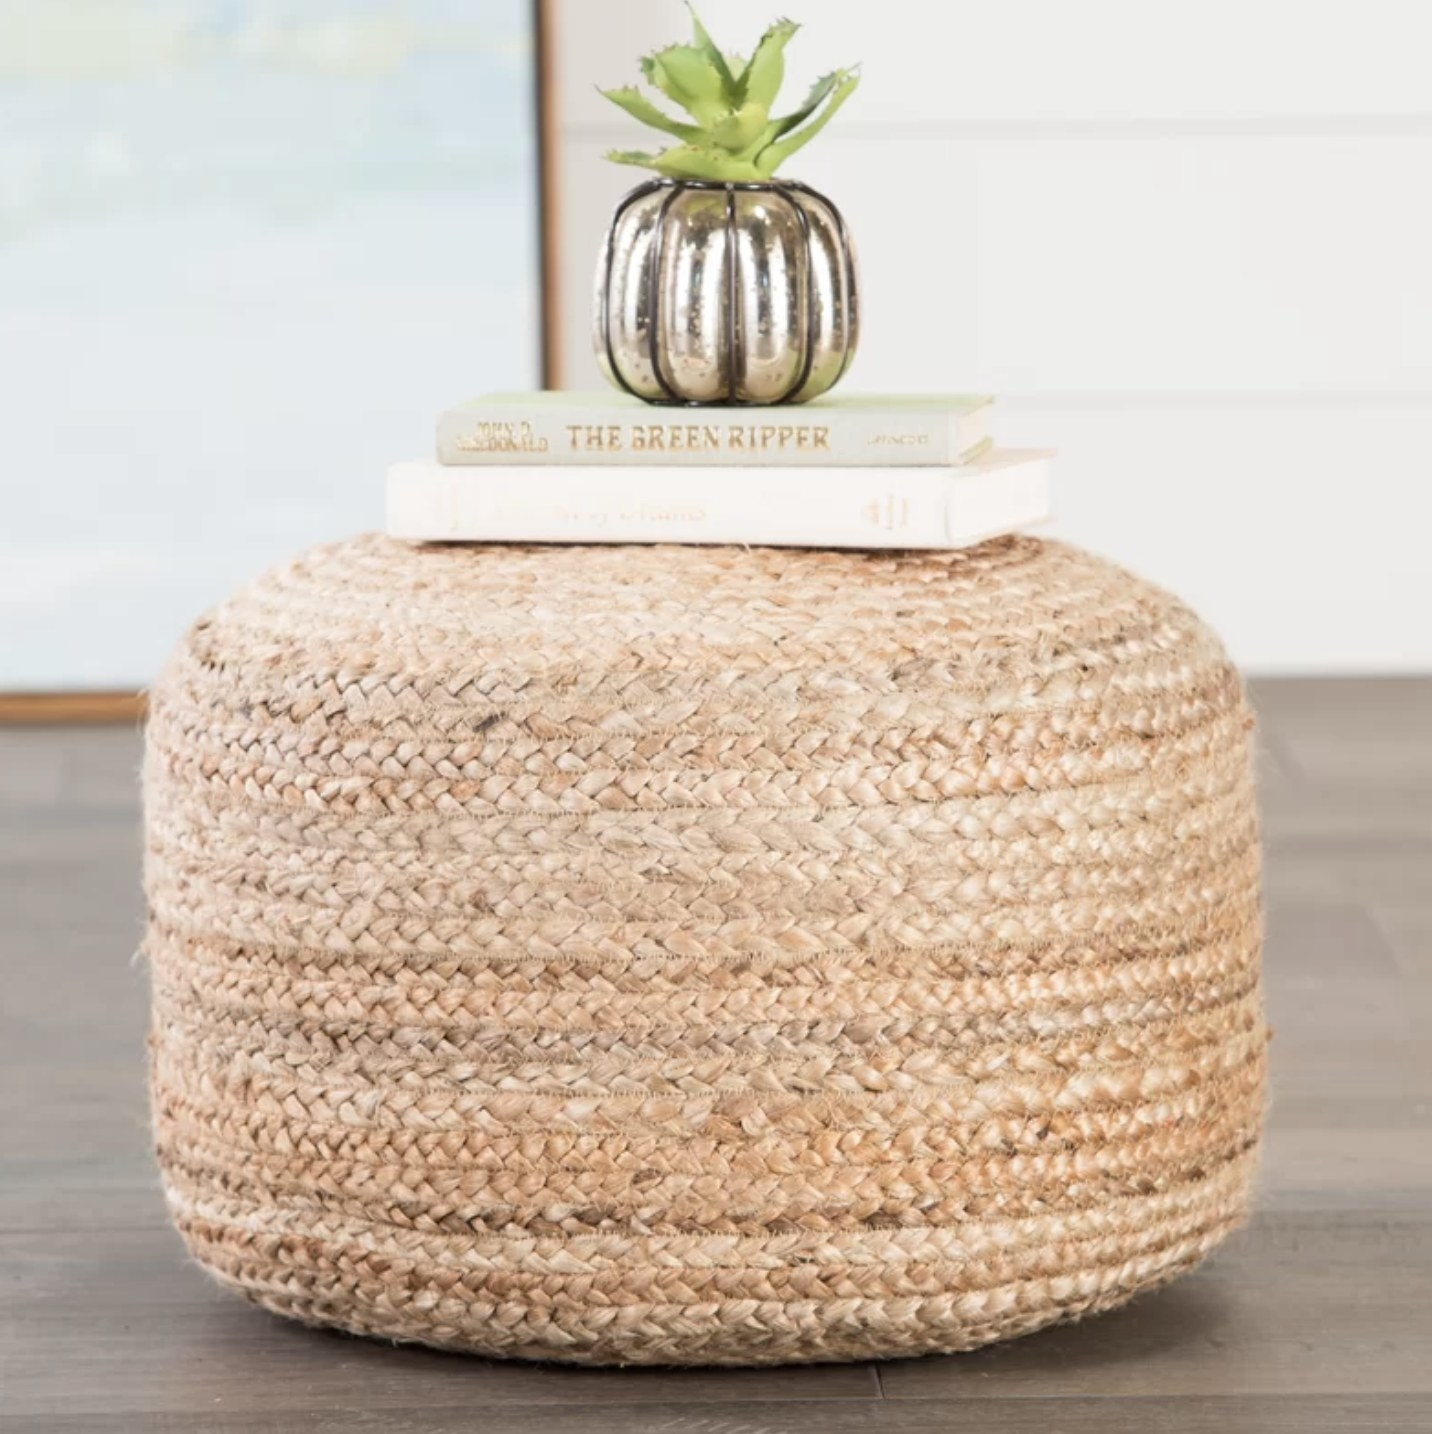 The pouf in a wicker material